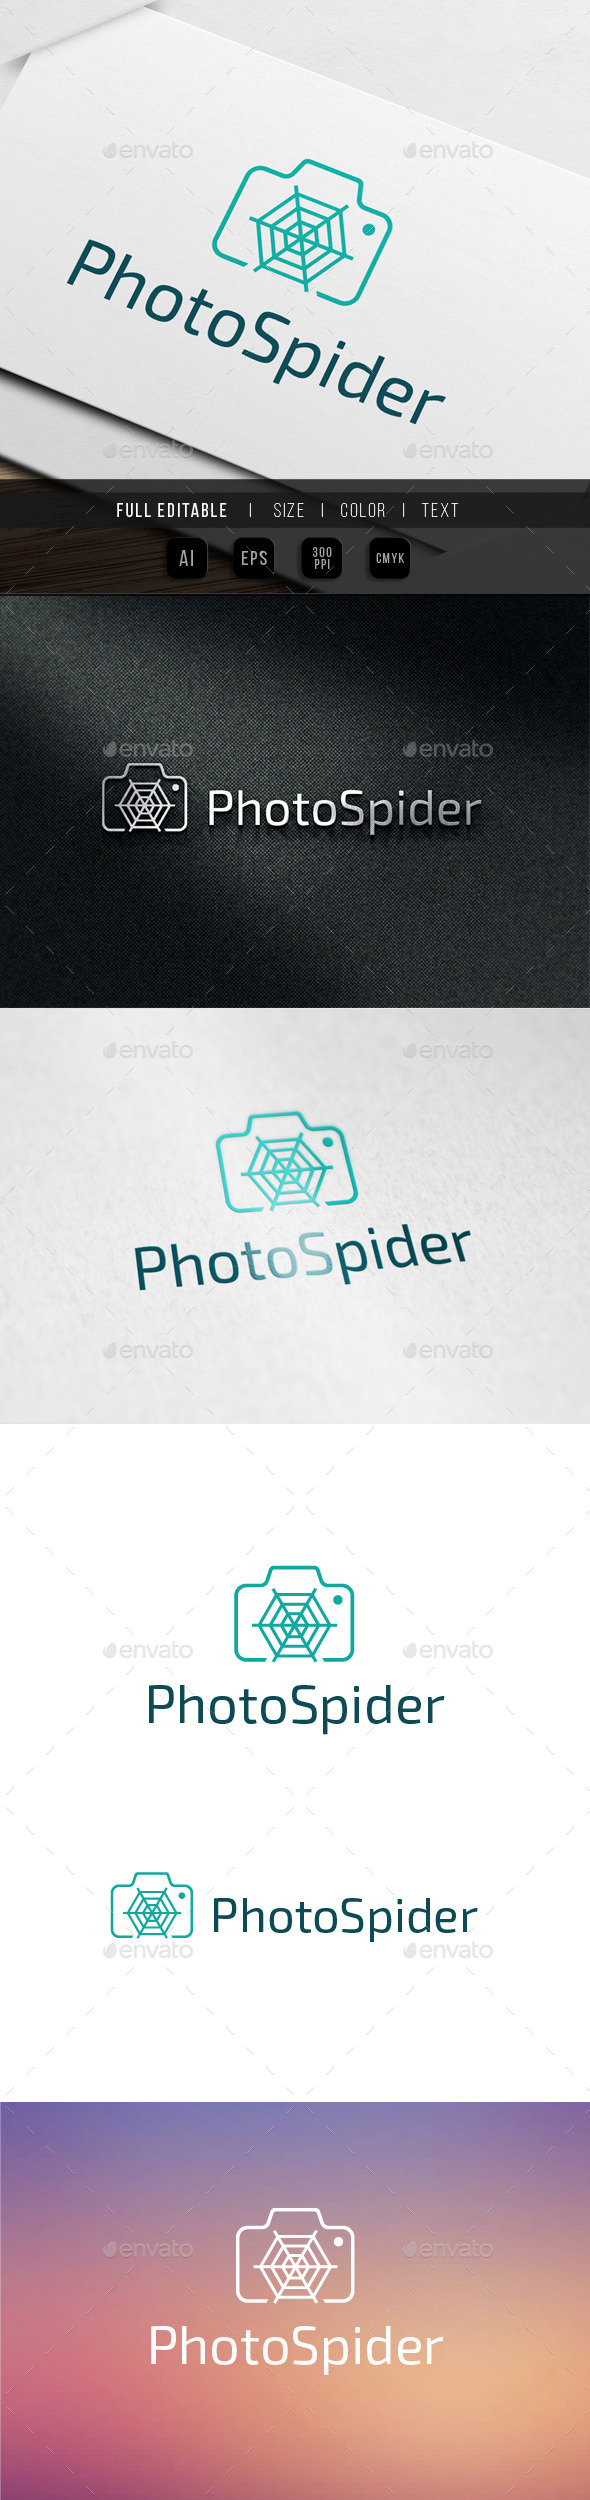 Photo Spider - Micro Shot Logo Template - Abstract Logo Templates